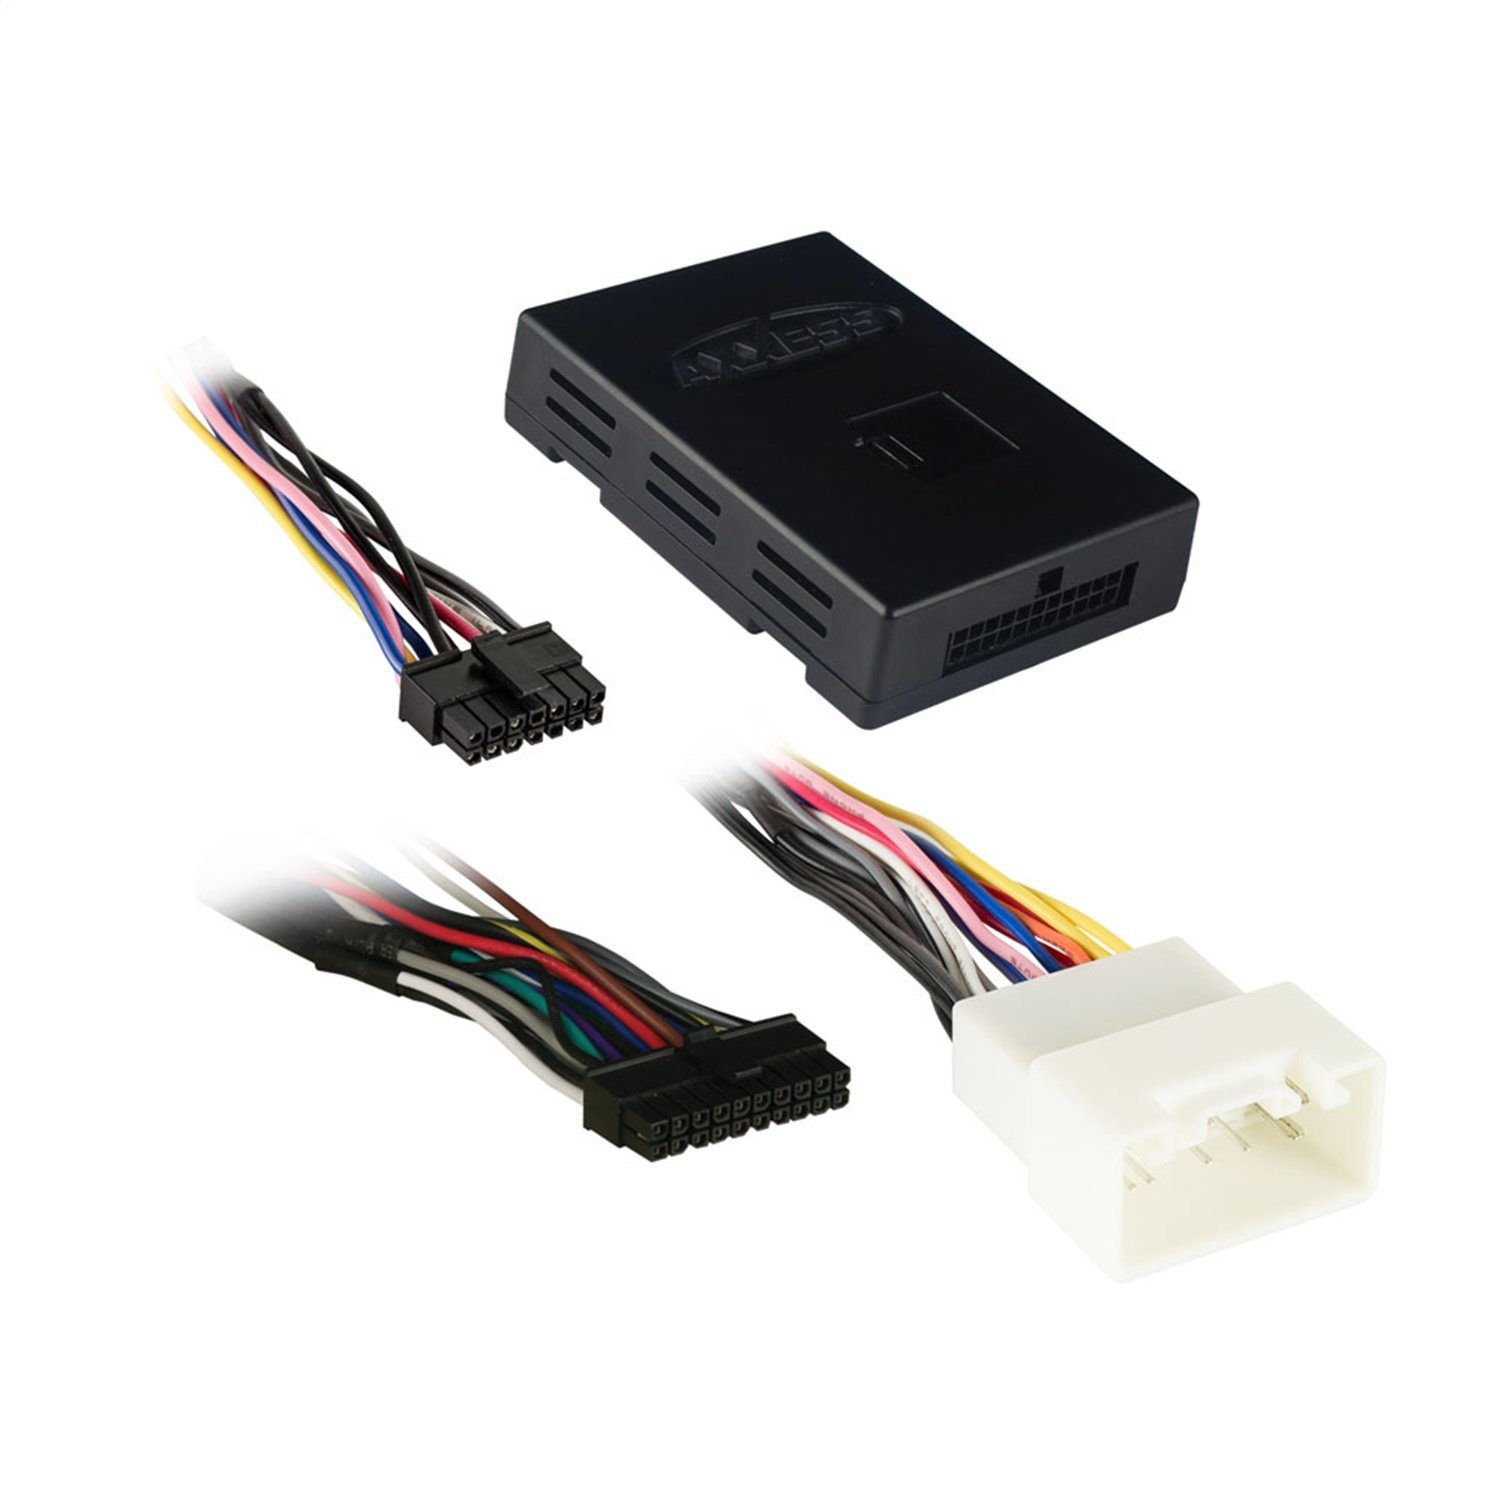 Amazon.com: Metra TYTO-01 JBL Amplifier Interface Harness: AXXESS(R): Car  Electronics